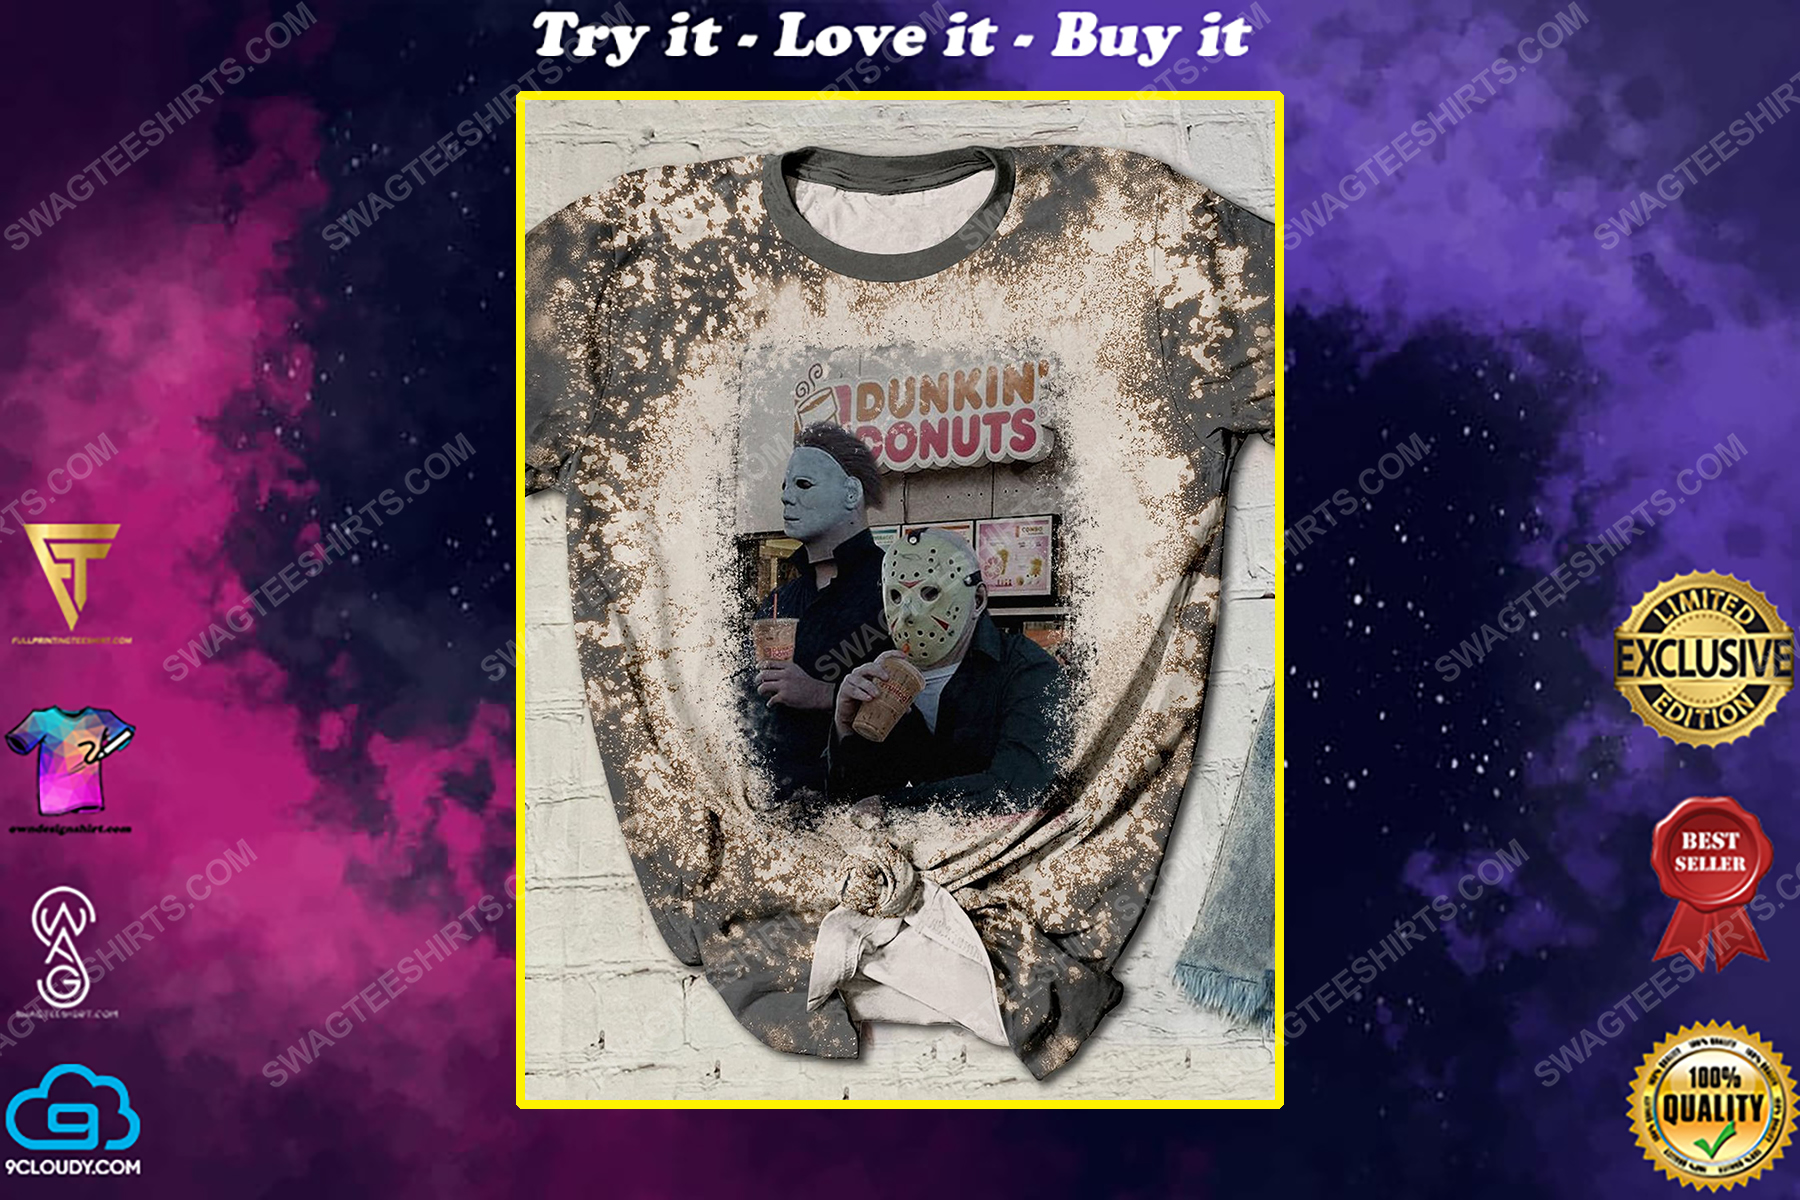 Halloween horror movie characters dunkin donuts bleached shirt